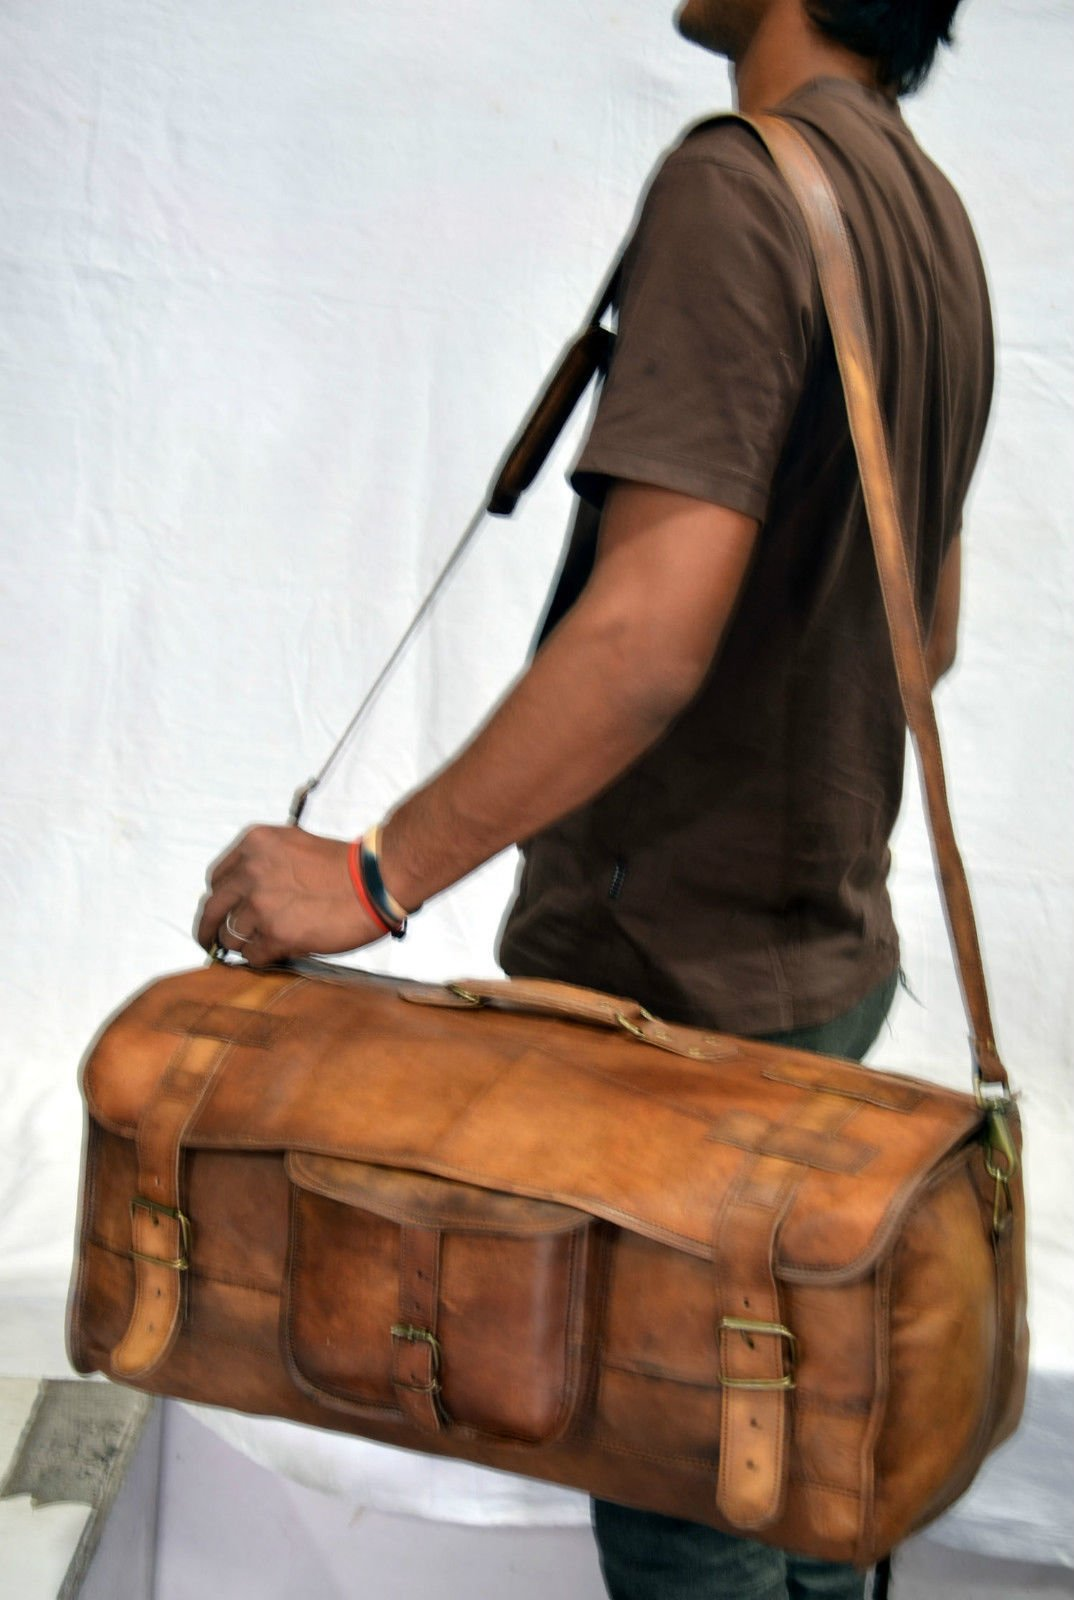 Urban Dezire Leather Duffel Travel Gym Overnight Weekend Leather Bag Sports Cabin by Urban Dezire (Image #5)